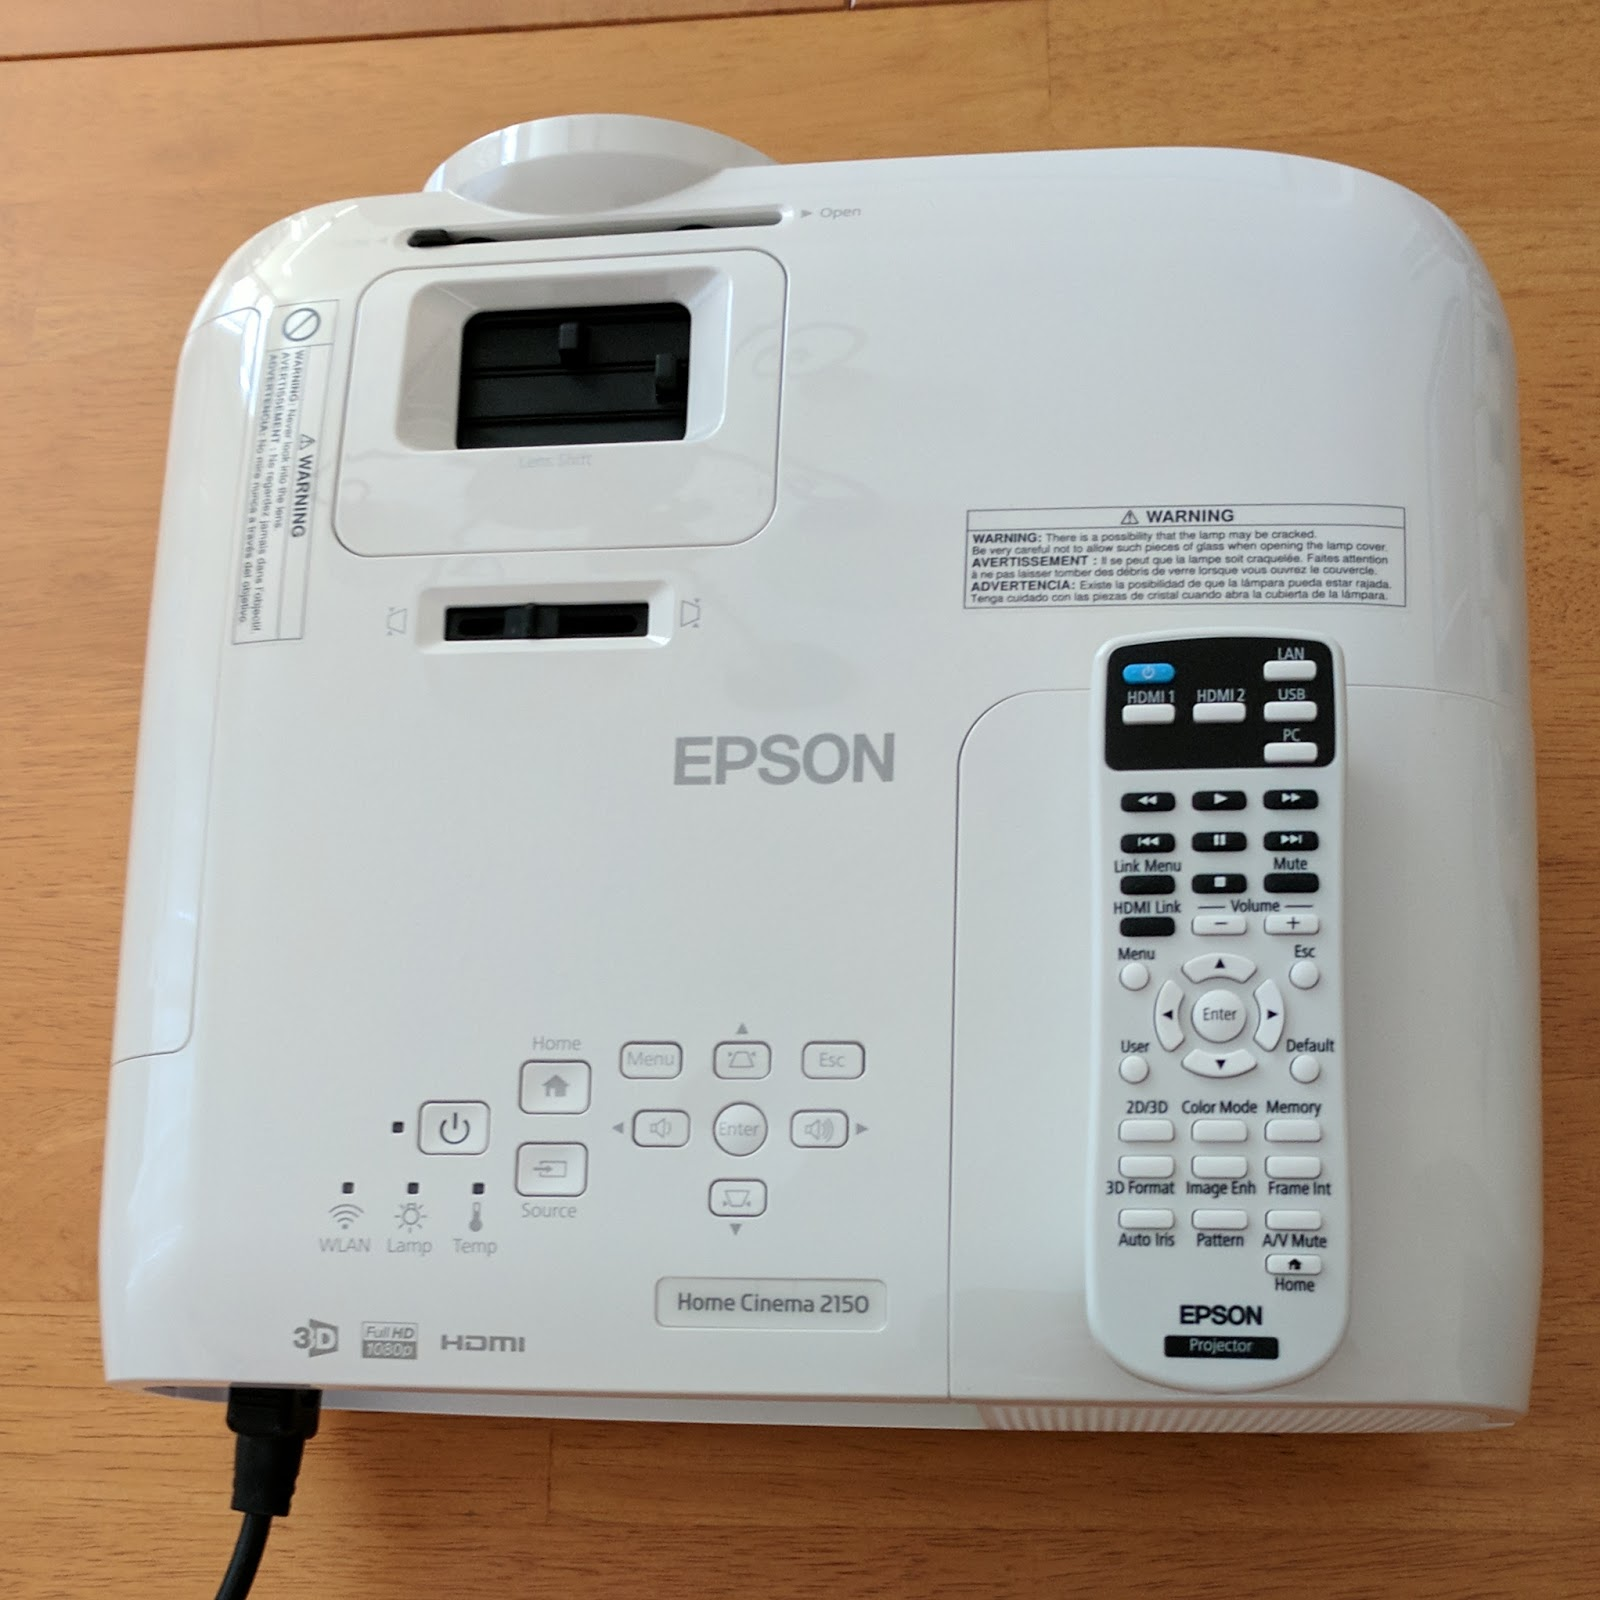 Bryan Hill's Blog: Product Review: Epson Home Cinema 2150